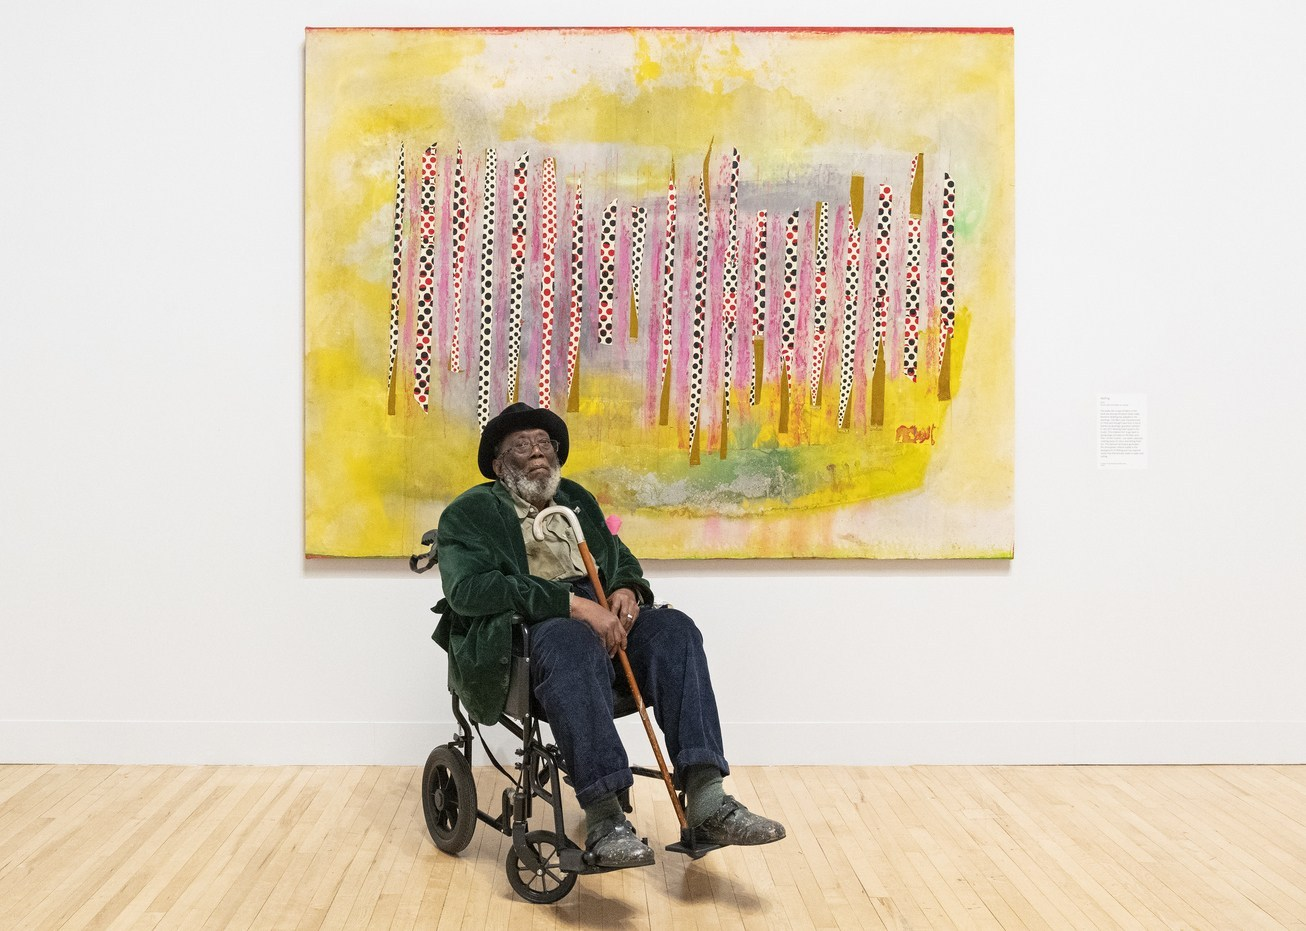 Frank Bowling at Tate Britain, in front of his painting 'Wafting'. Photo: Tate/ Matt Greenwood